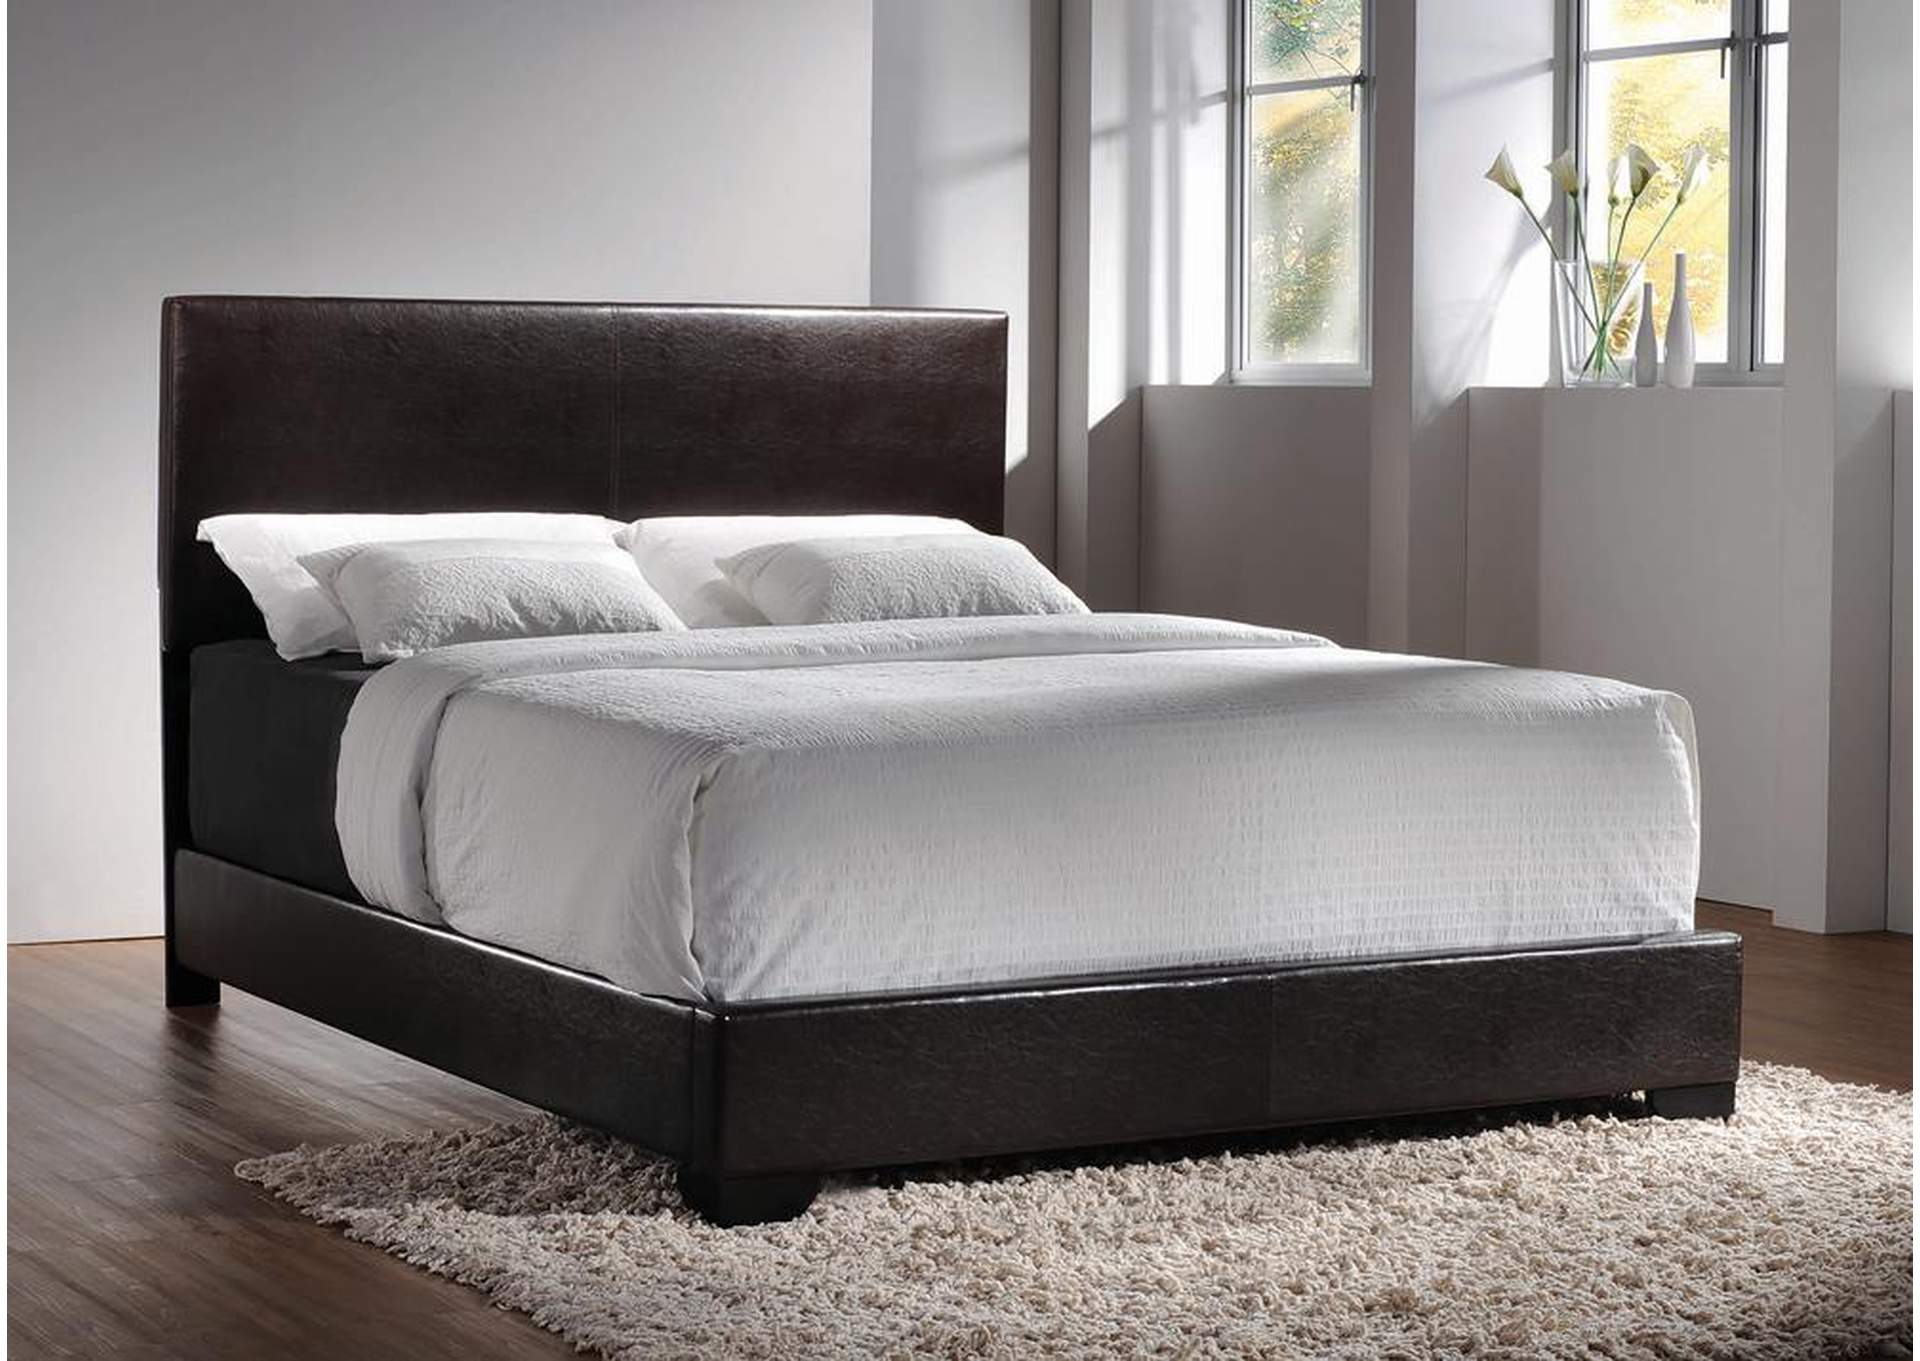 Conner Dark Brown Upholstered Queen Platform Bed,Coaster Furniture